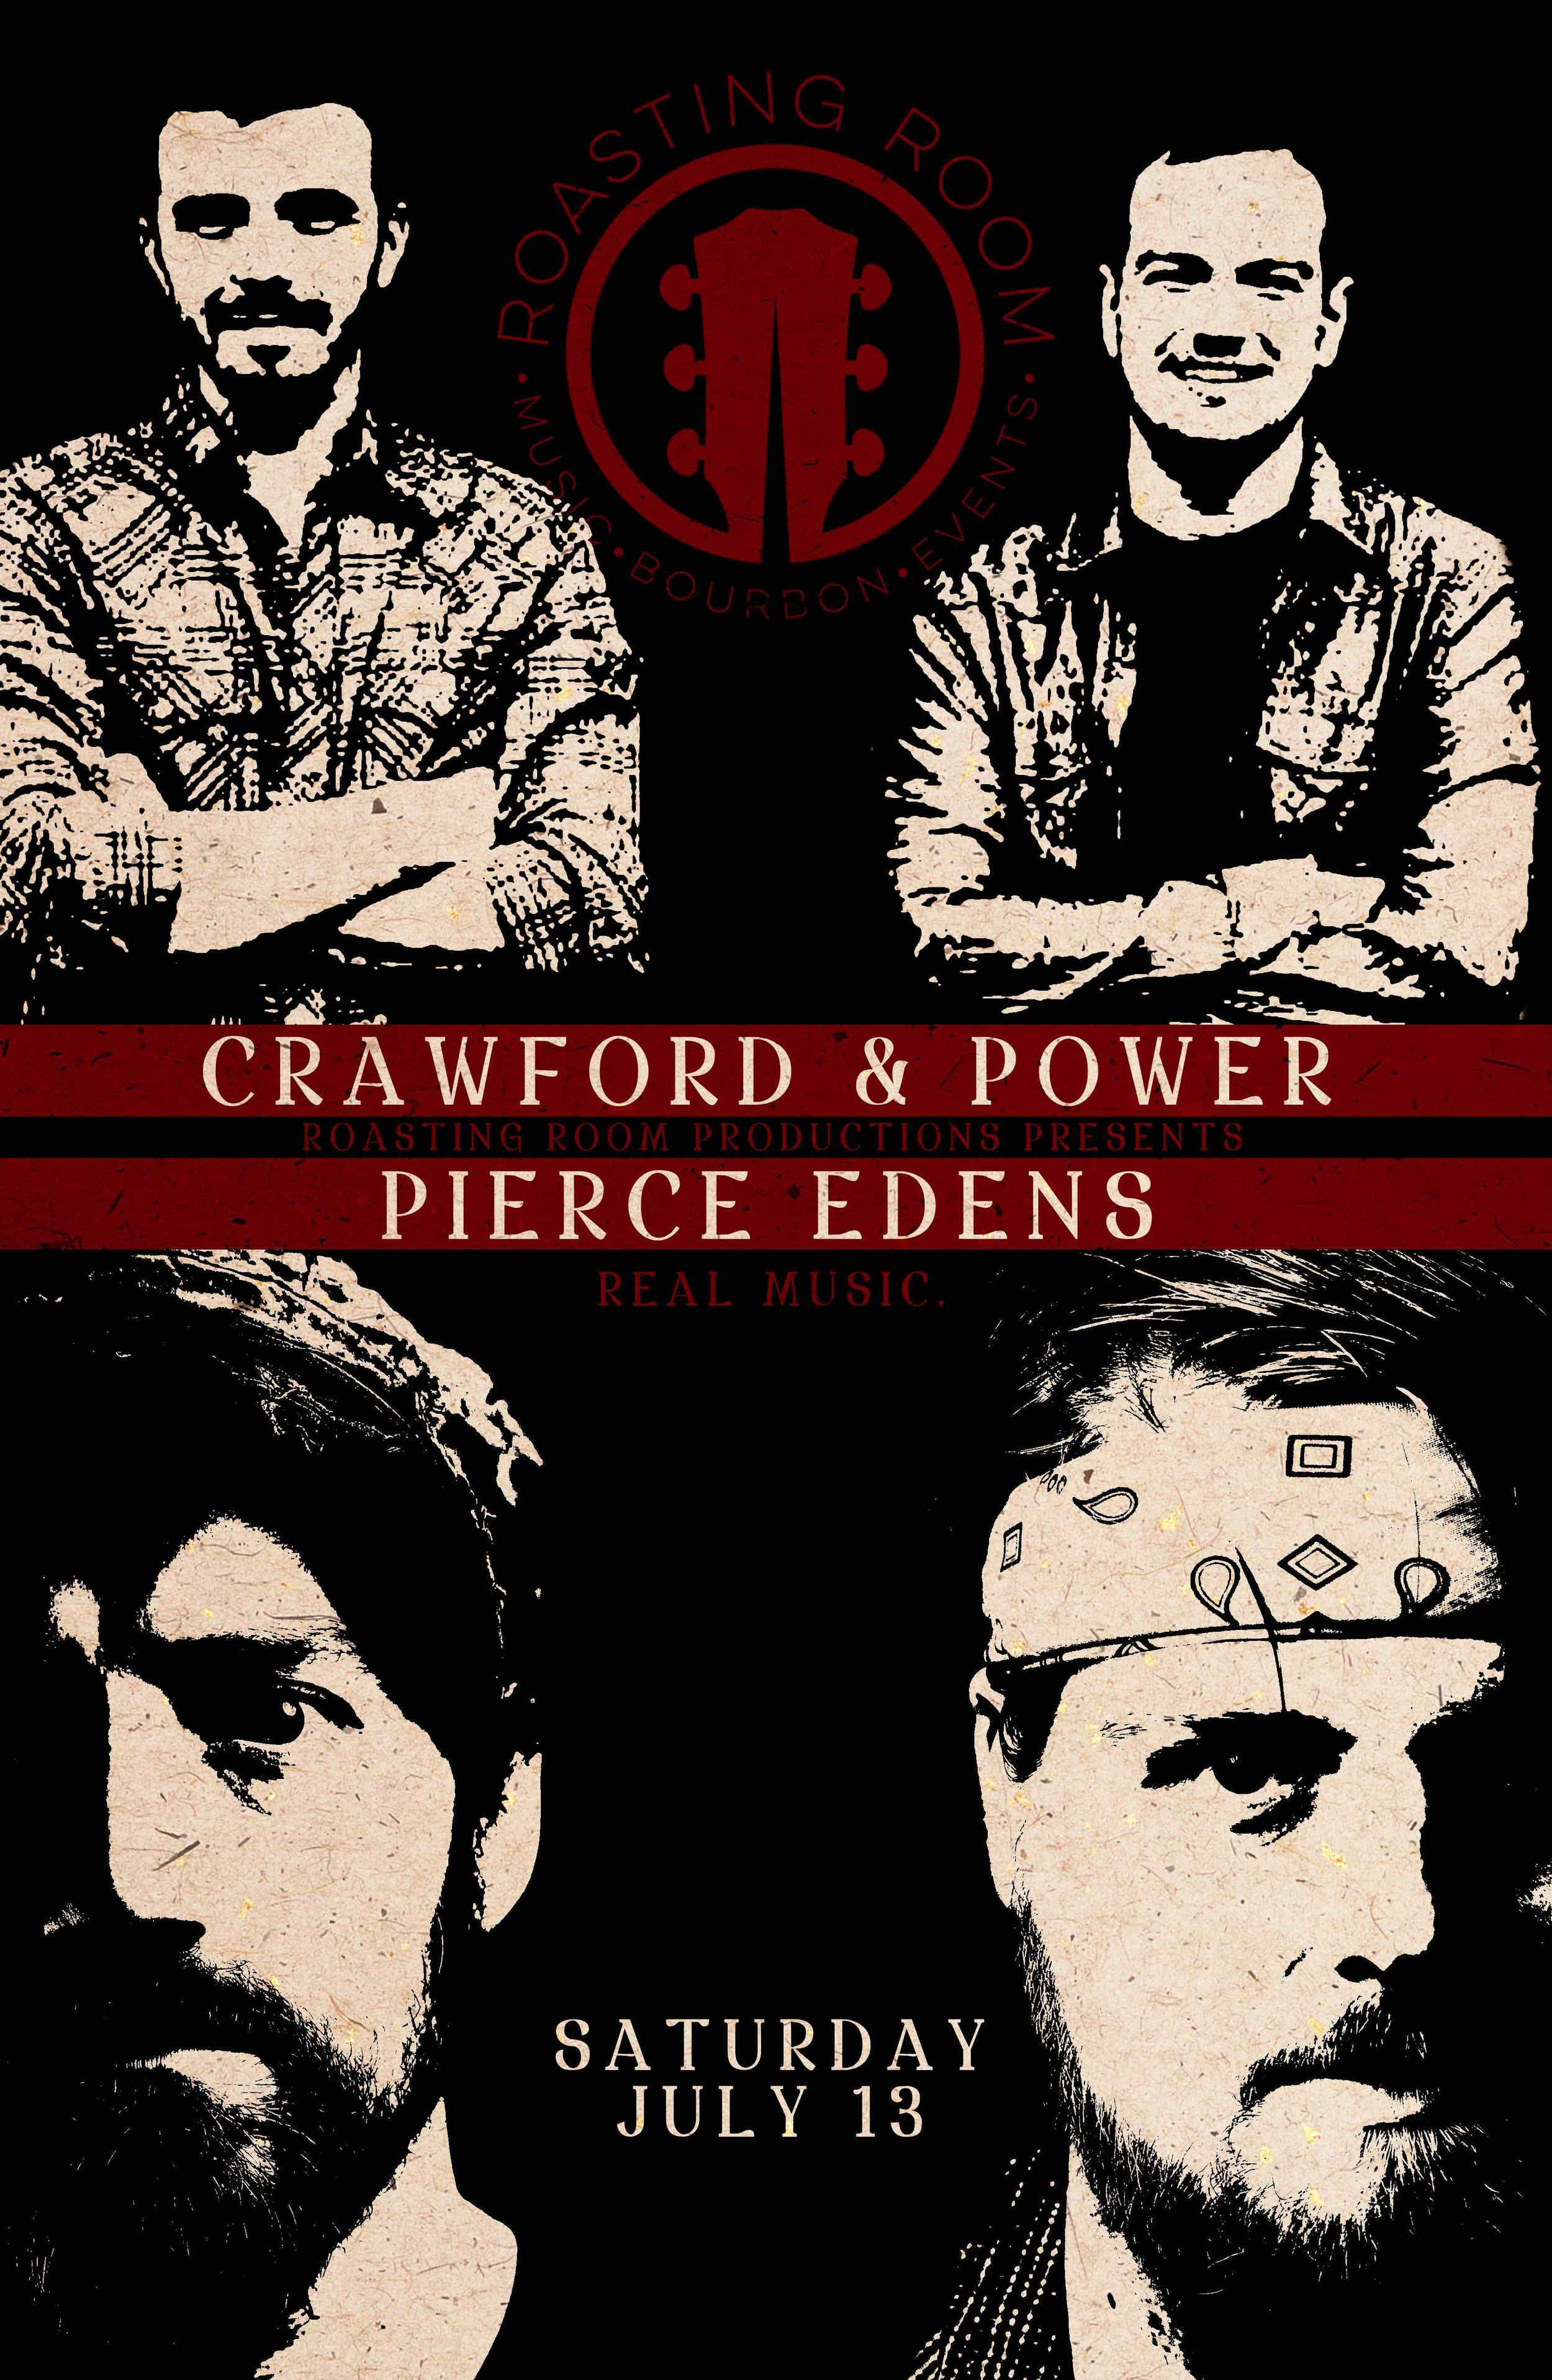 07.13 CrawfordPowerPierceEdens_web.jpg